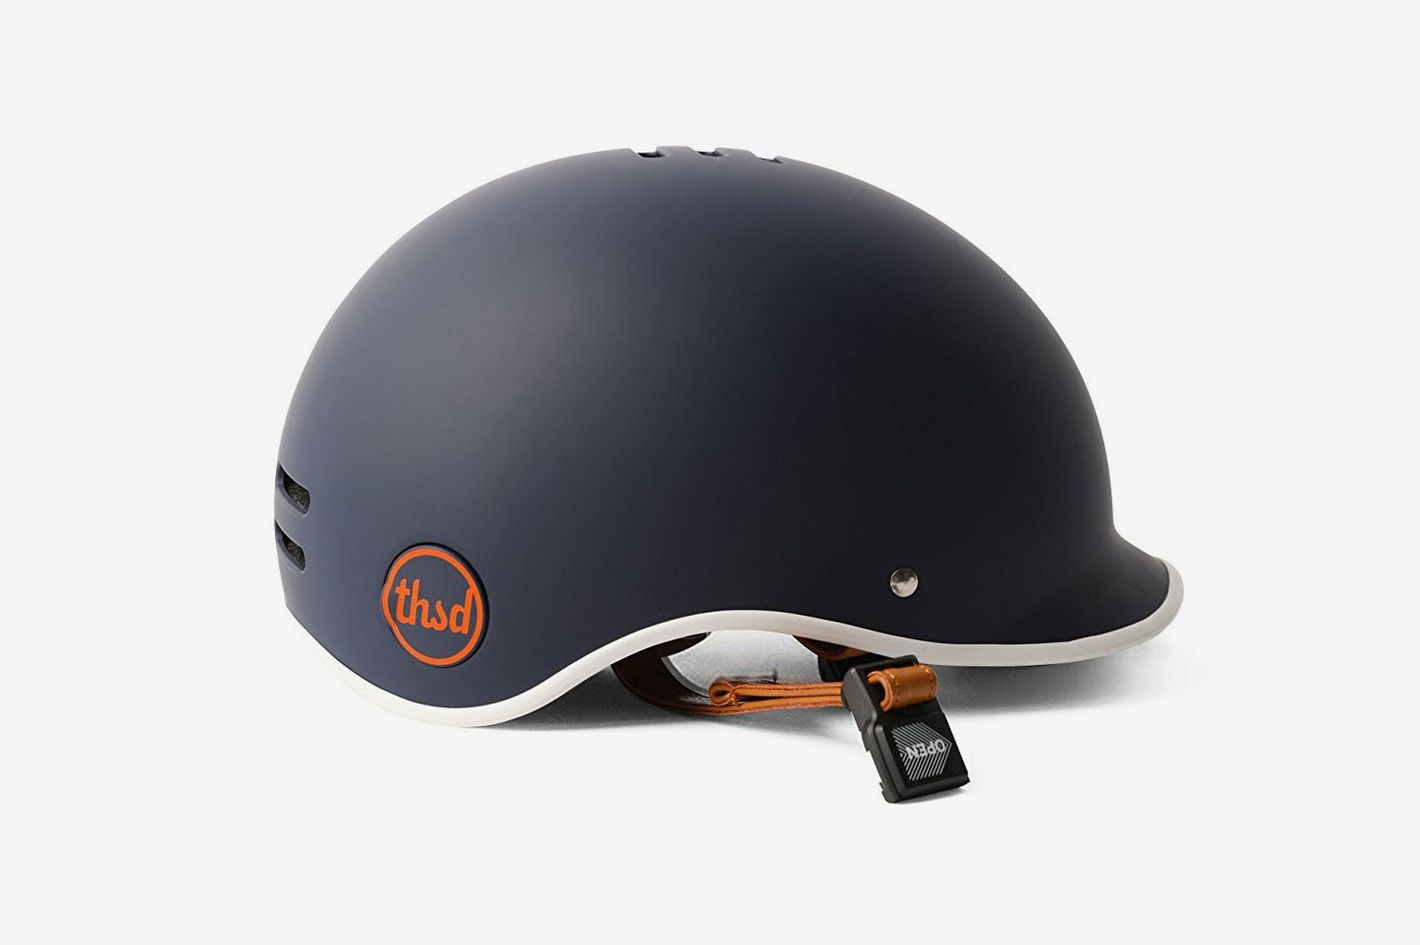 Thousand Adult Anti-Theft Bike Helmet